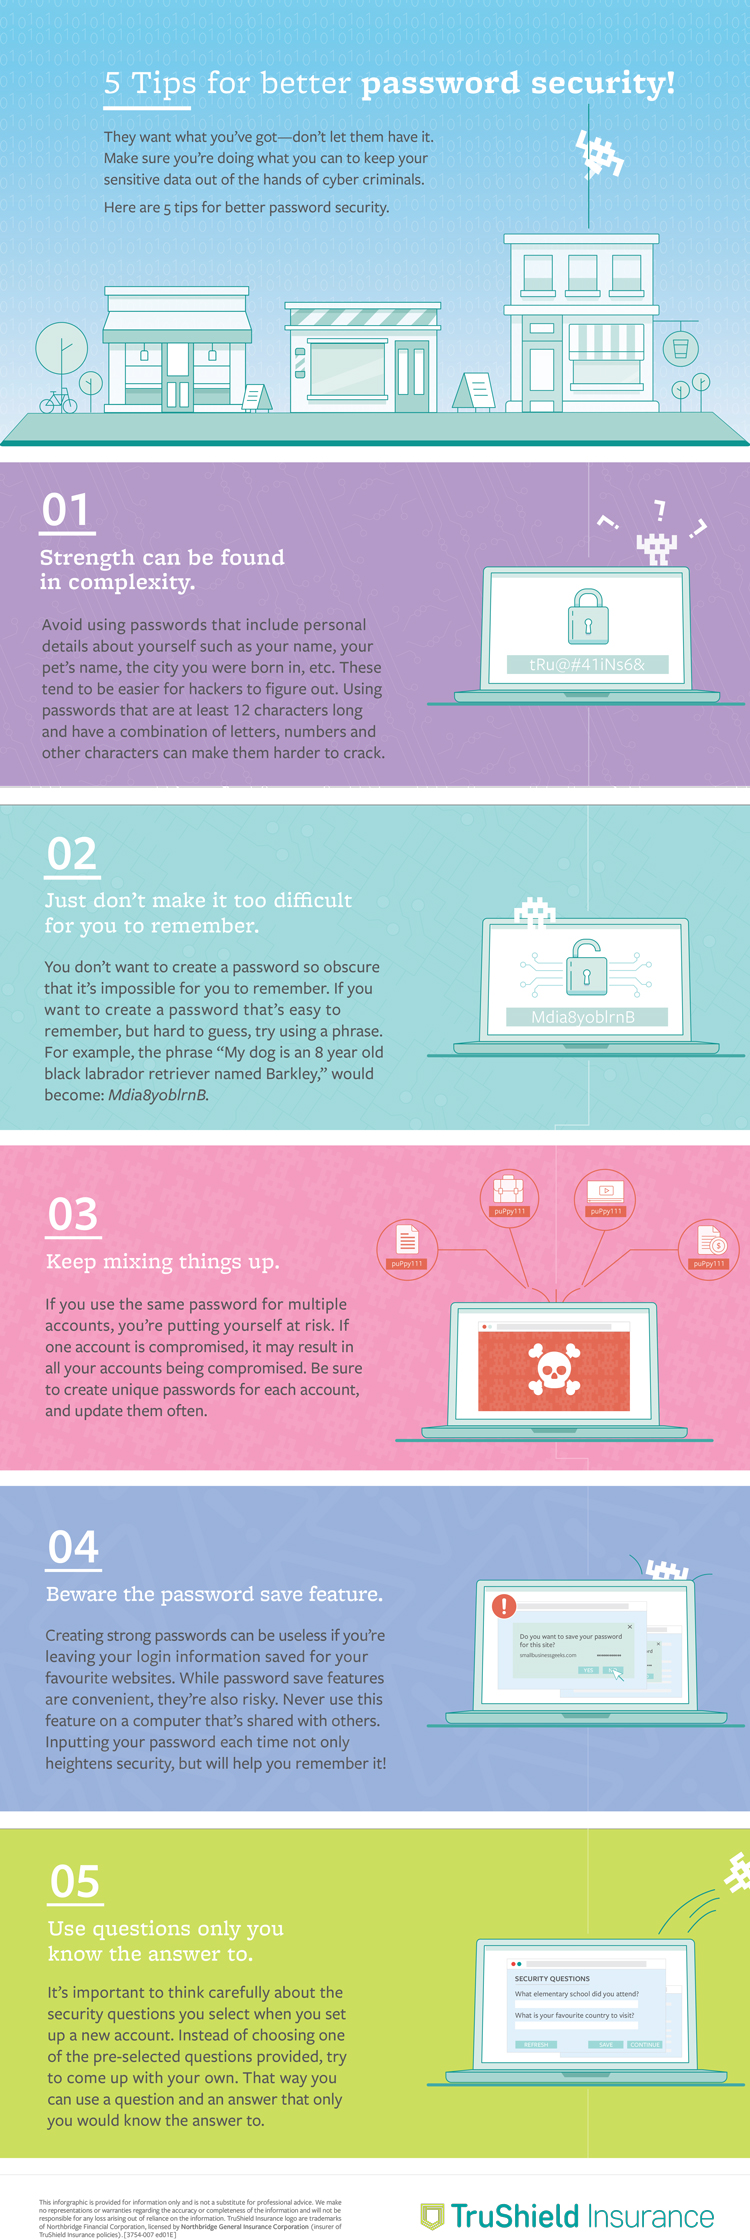 TruShield Inforgraphic on 5 tips for better password security